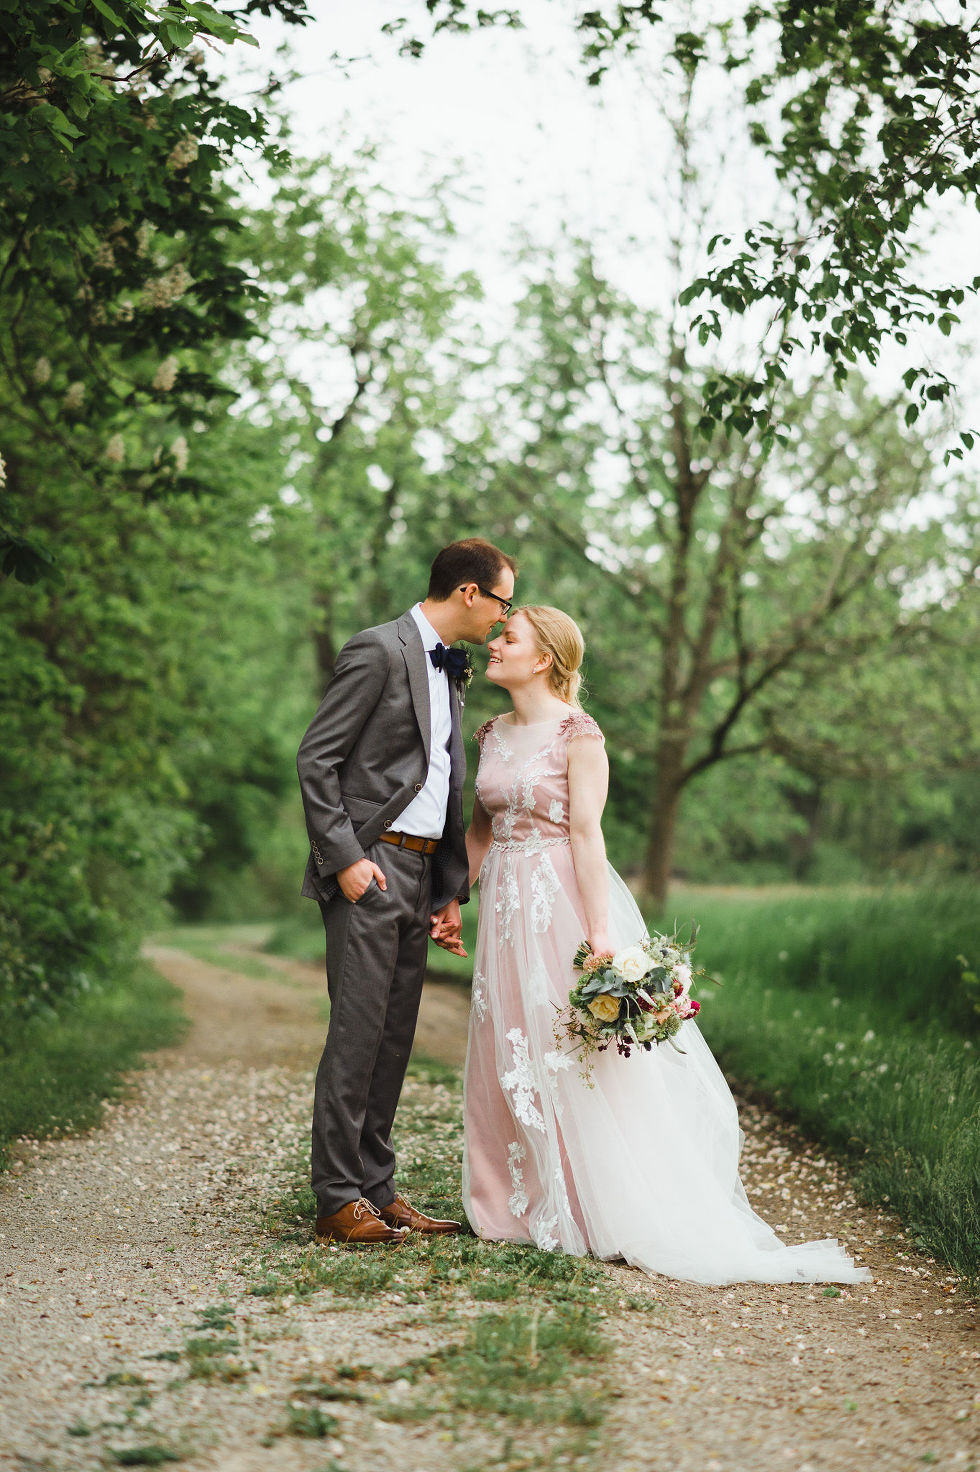 groom kissing his bride on the forehead as they walk along a forested path during their charming southern style wedding at Ruthven National Historic Site near Hamilton